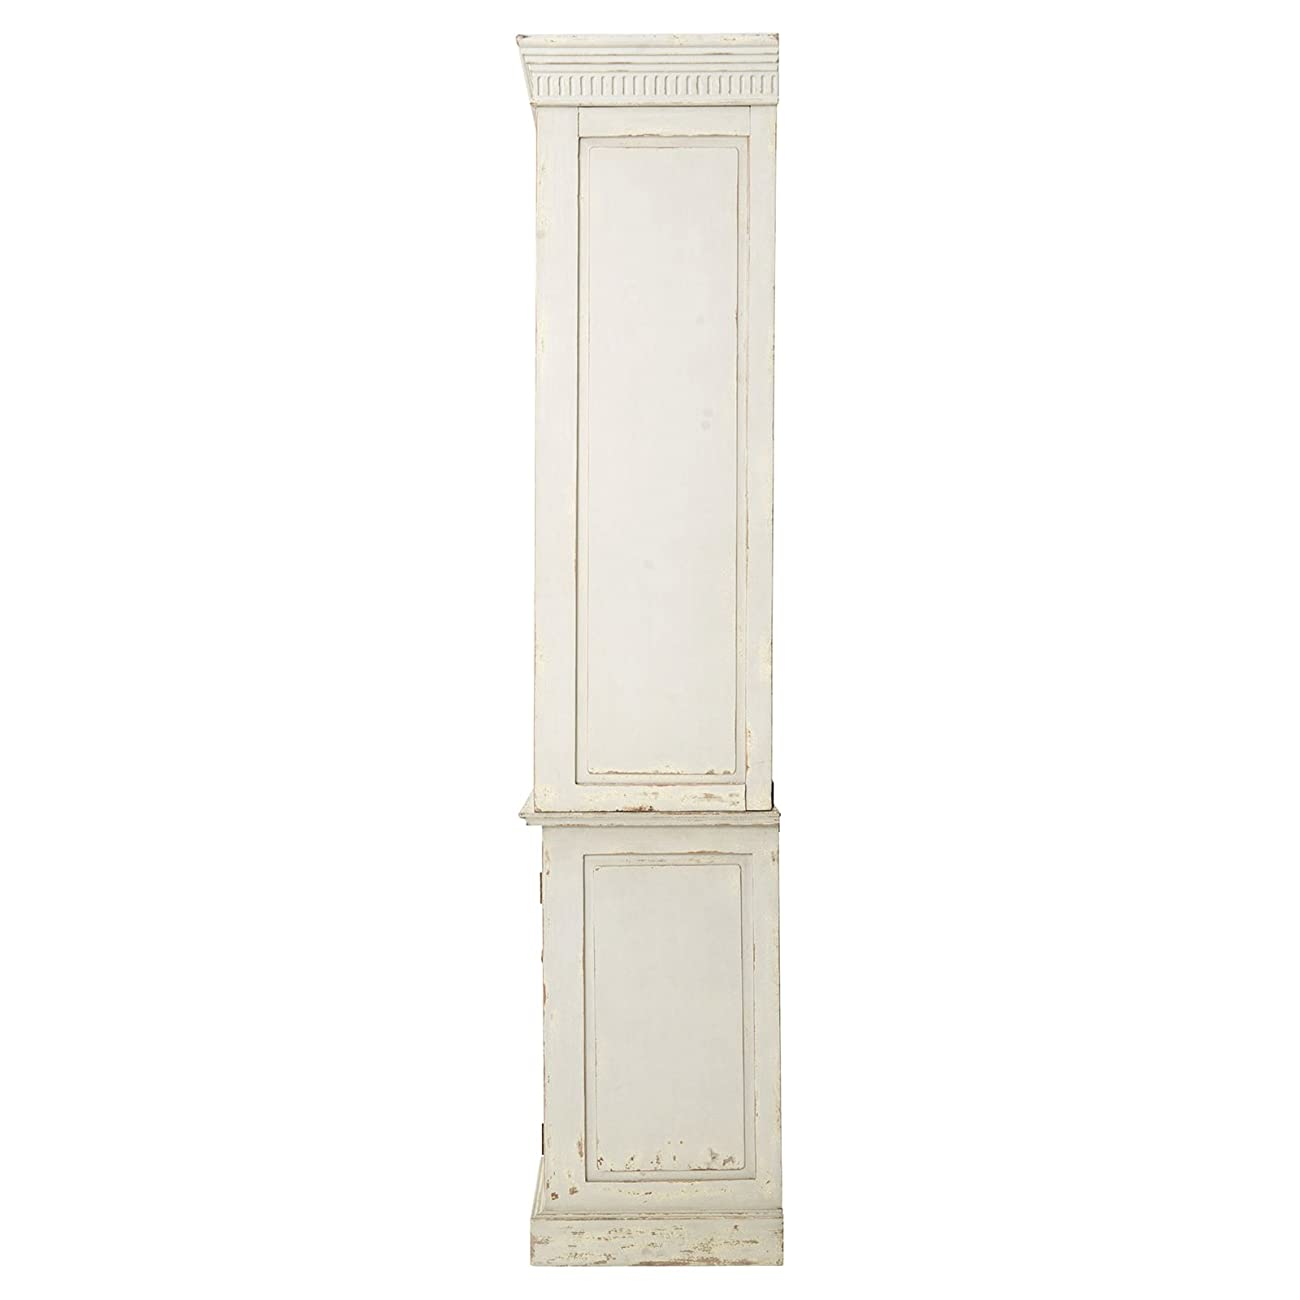 Laurine French Country Rustic Ivory Arch Wood Cabinet 3